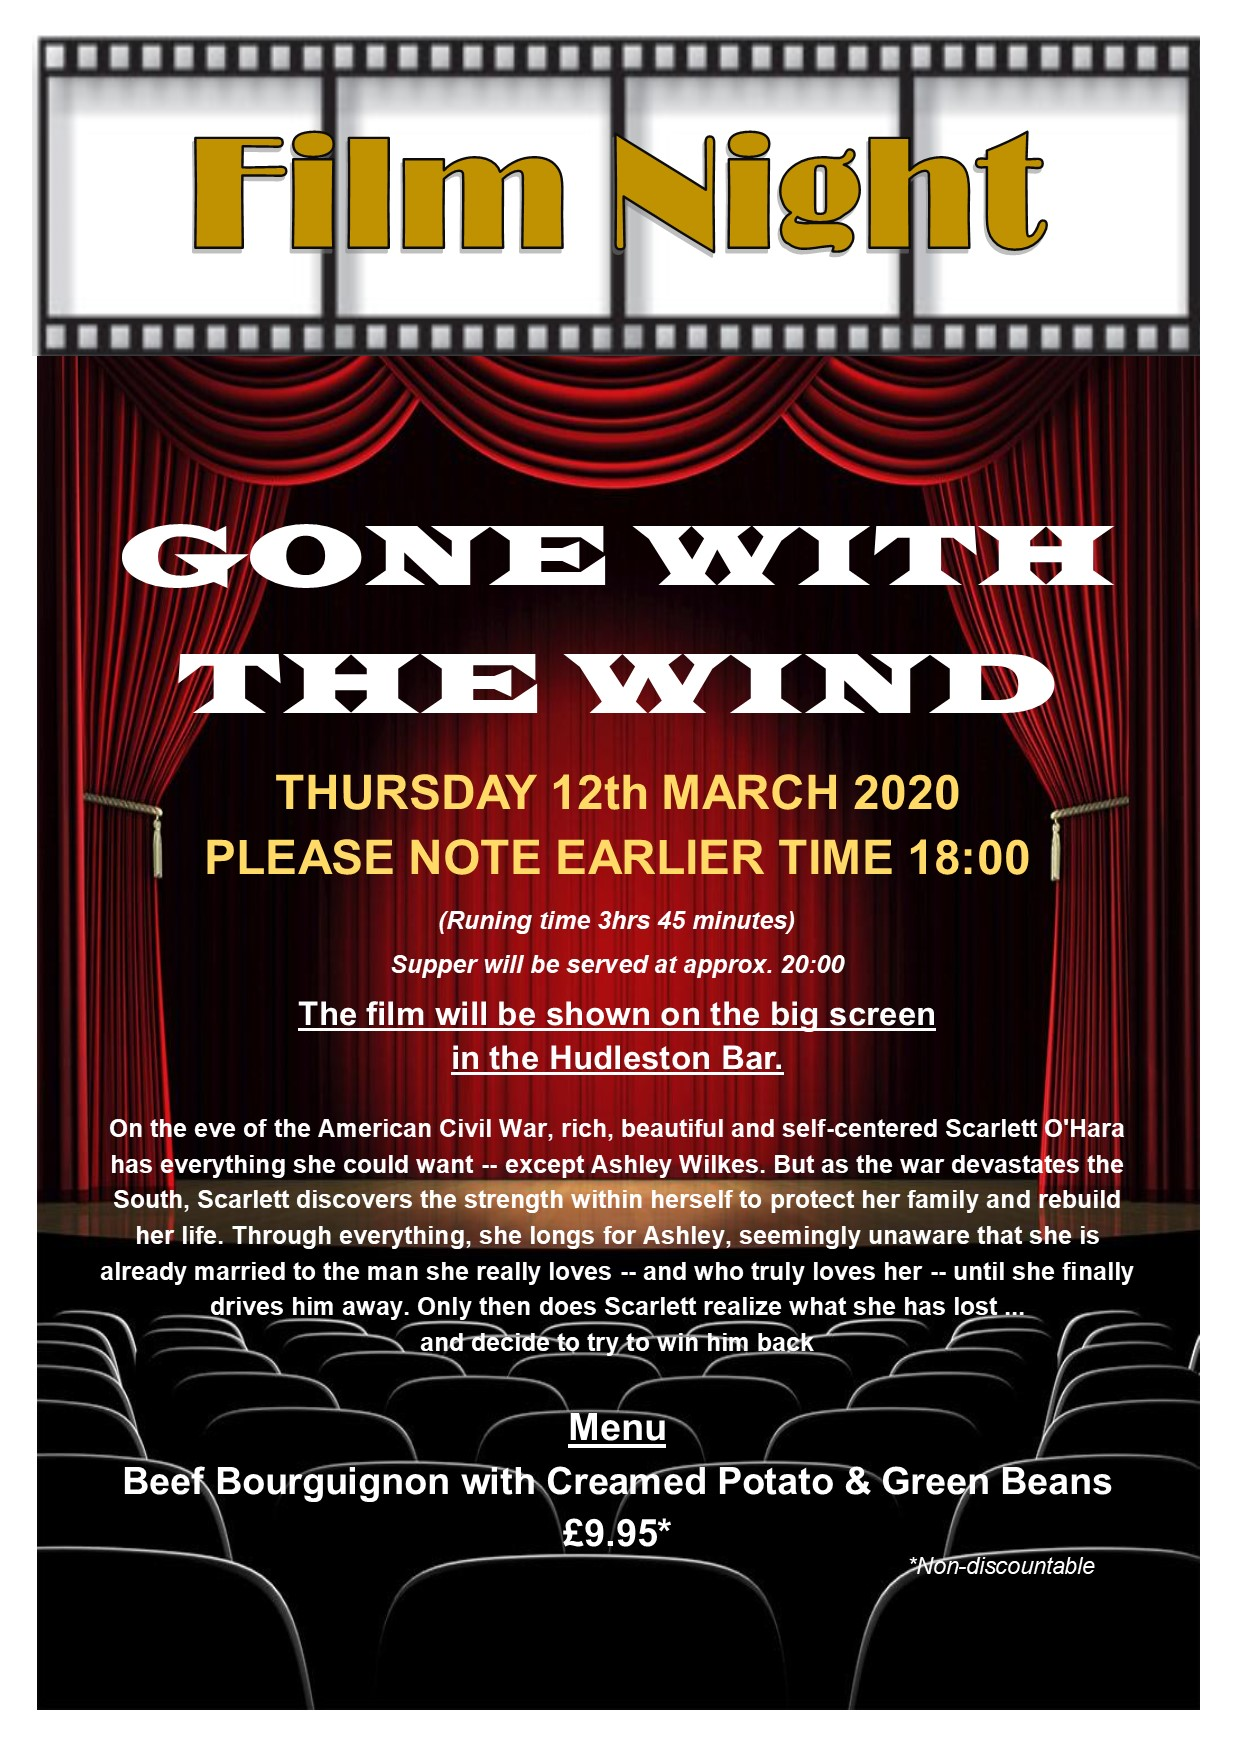 Film Night - Gone with the Wind